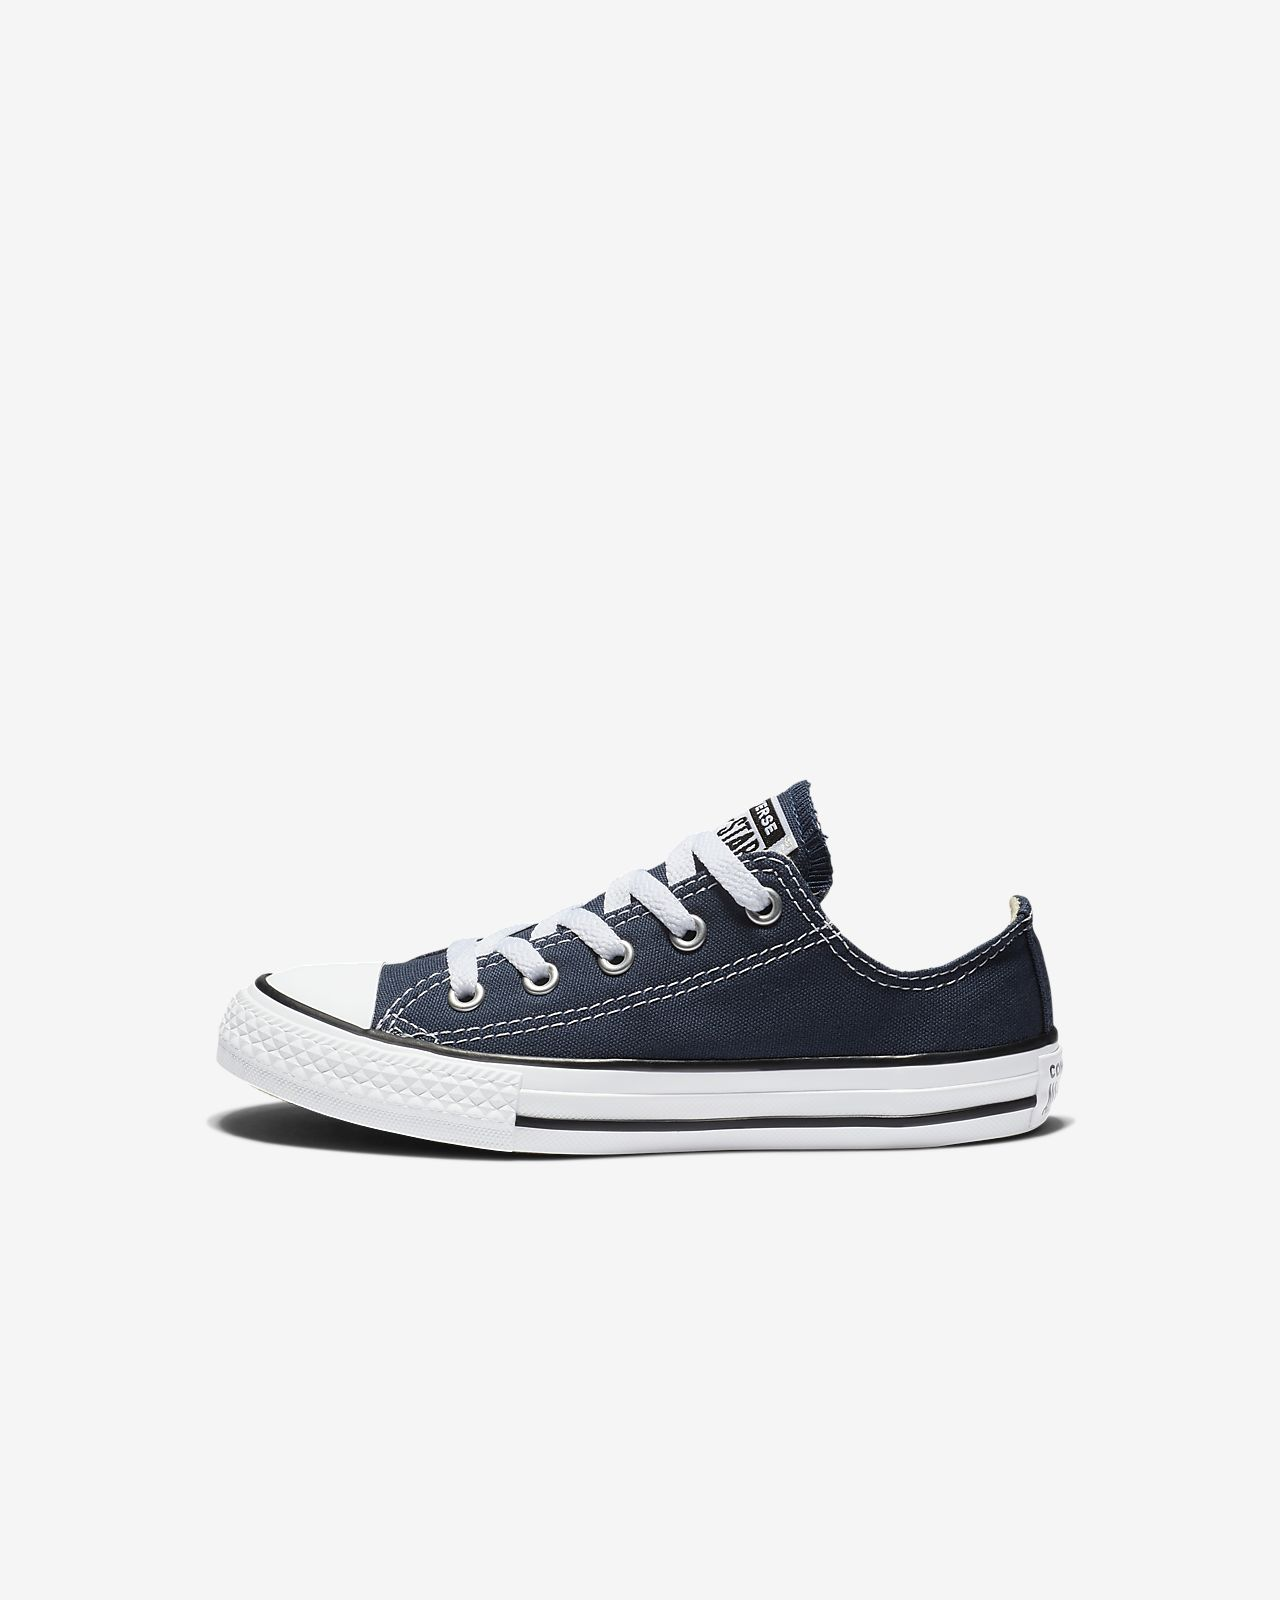 4d381d5955 Converse Chuck Taylor All Star Low Top (10.5c-3y) Little Kids' Shoe